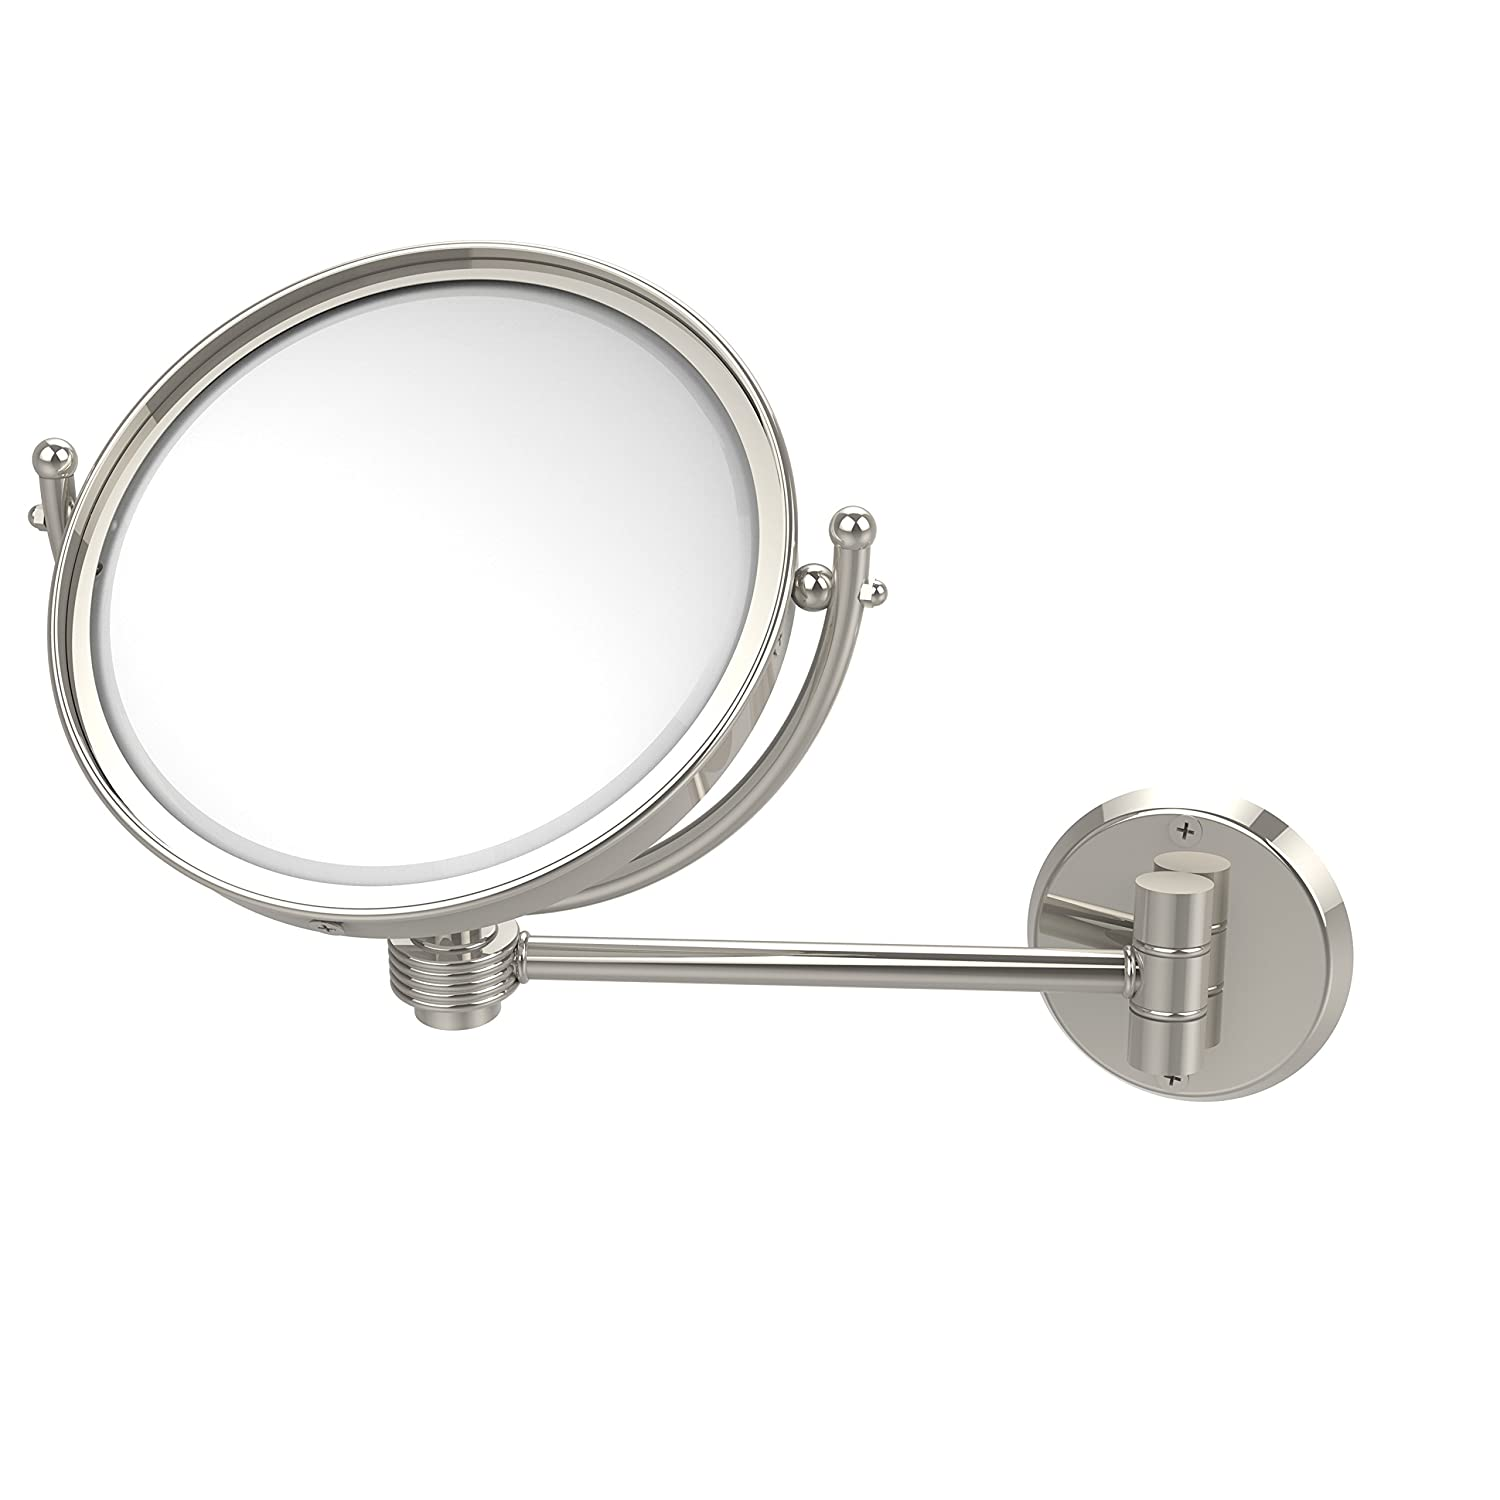 Allied Brass WM-5G//2X-PB 8 Inch Wall Mounted Make-Up Mirror 2X Magnification Polished Brass